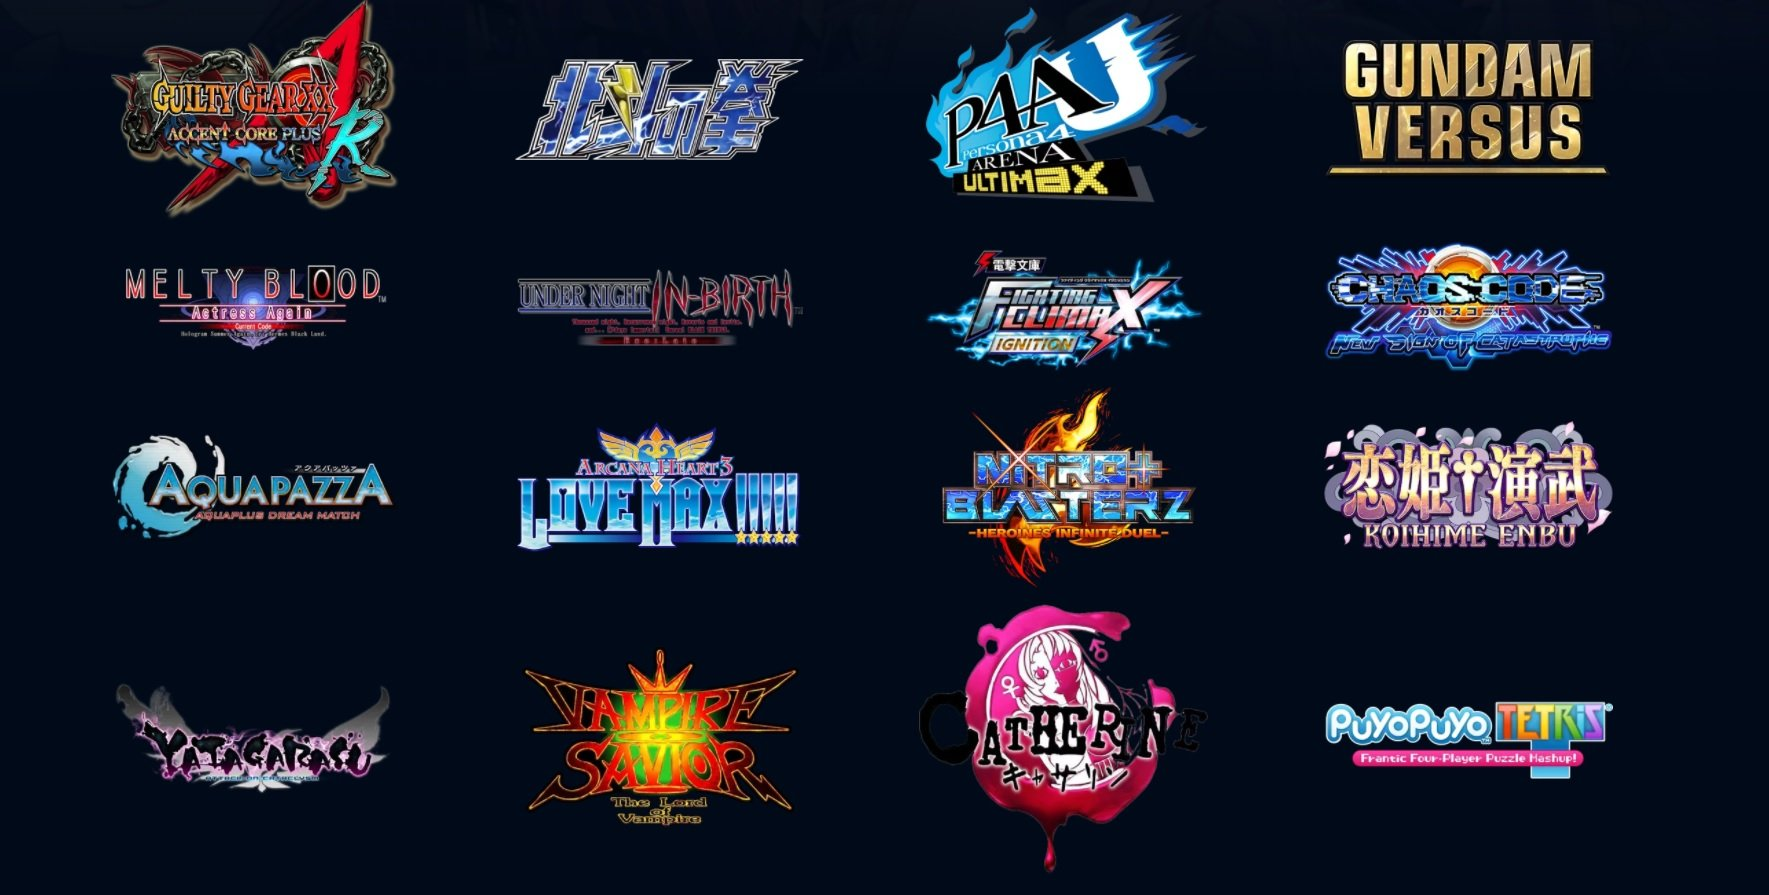 If your favorite fighter isn't on the main stage this weekend, consider catching Anime Evo screenshot